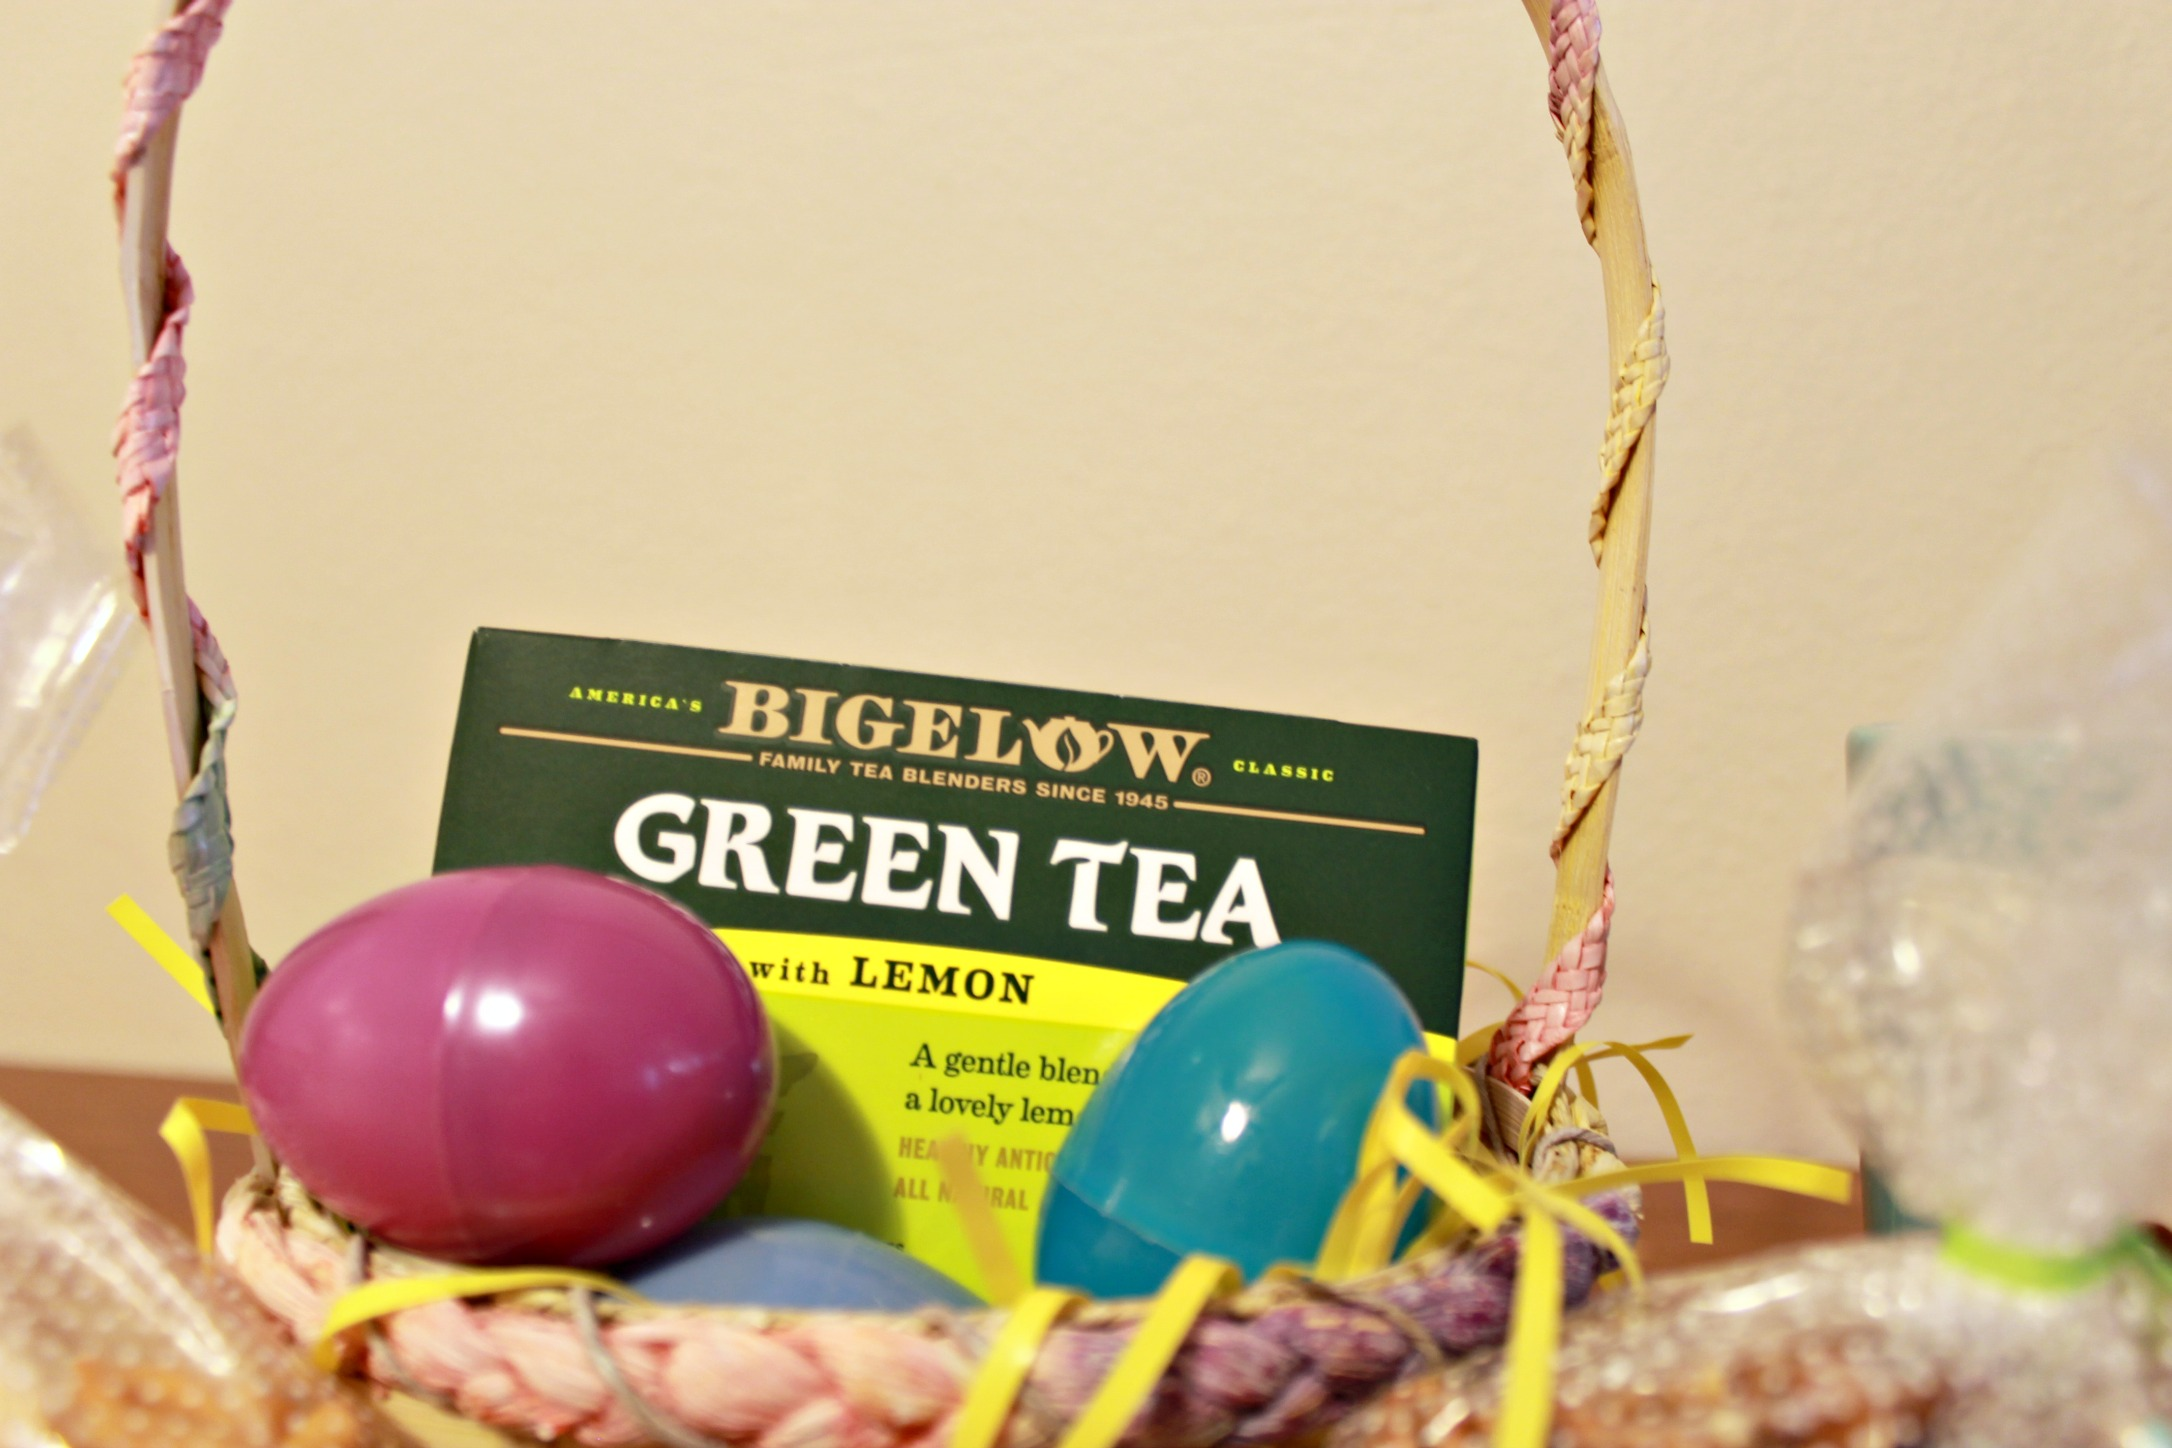 Bigelow Tea for Easter Celebrations #shop #Bigelow #TrendTea #CollectiveBias